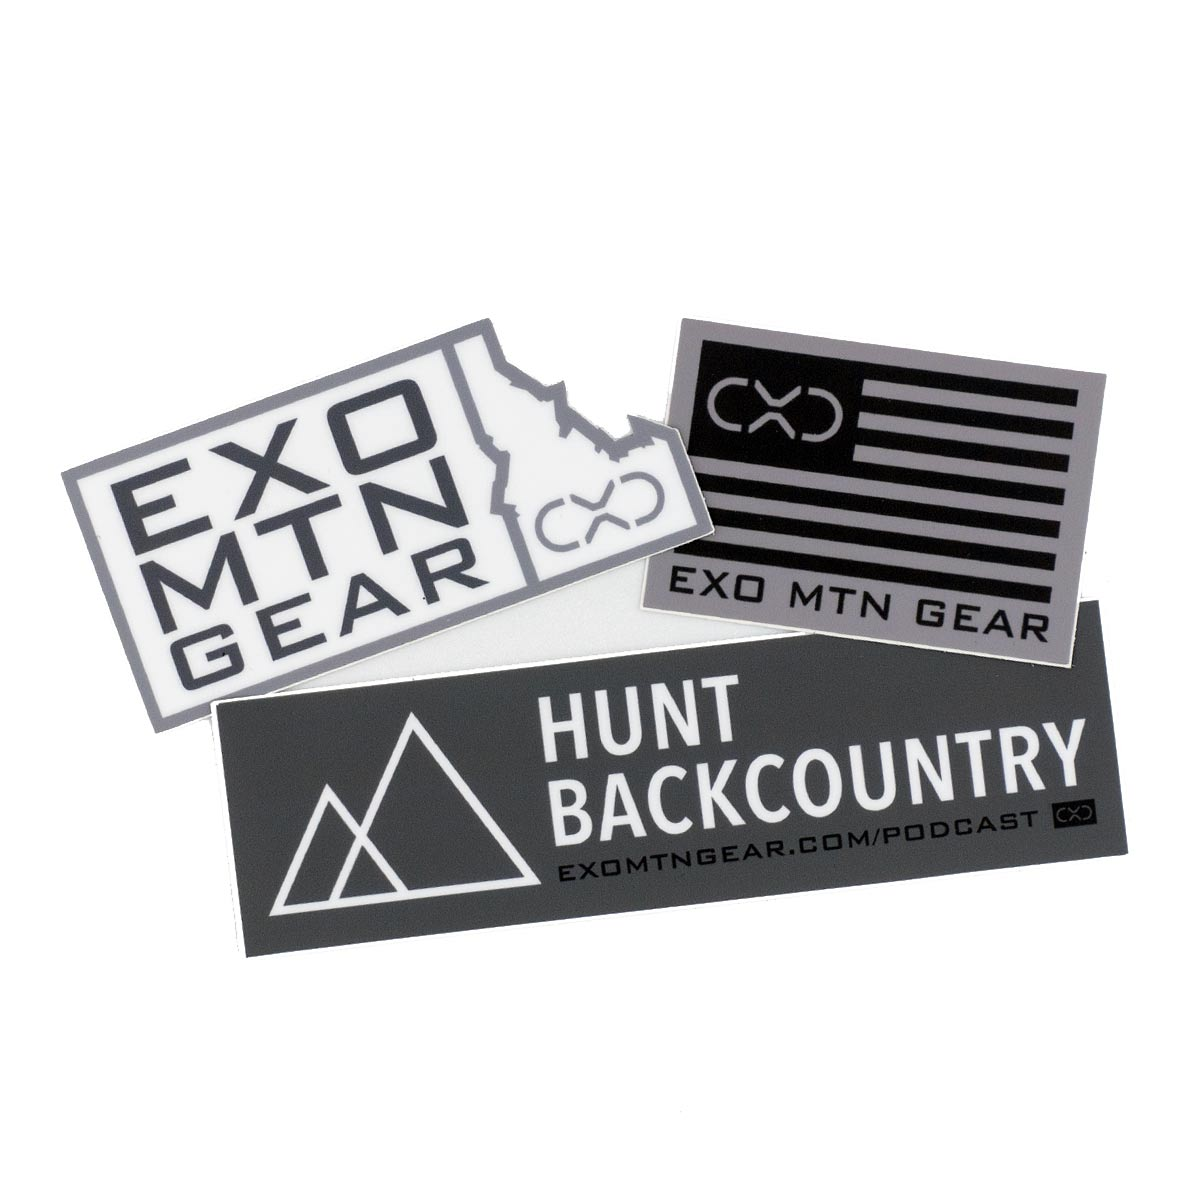 Hunt Backcountry Podcast Decal Pack